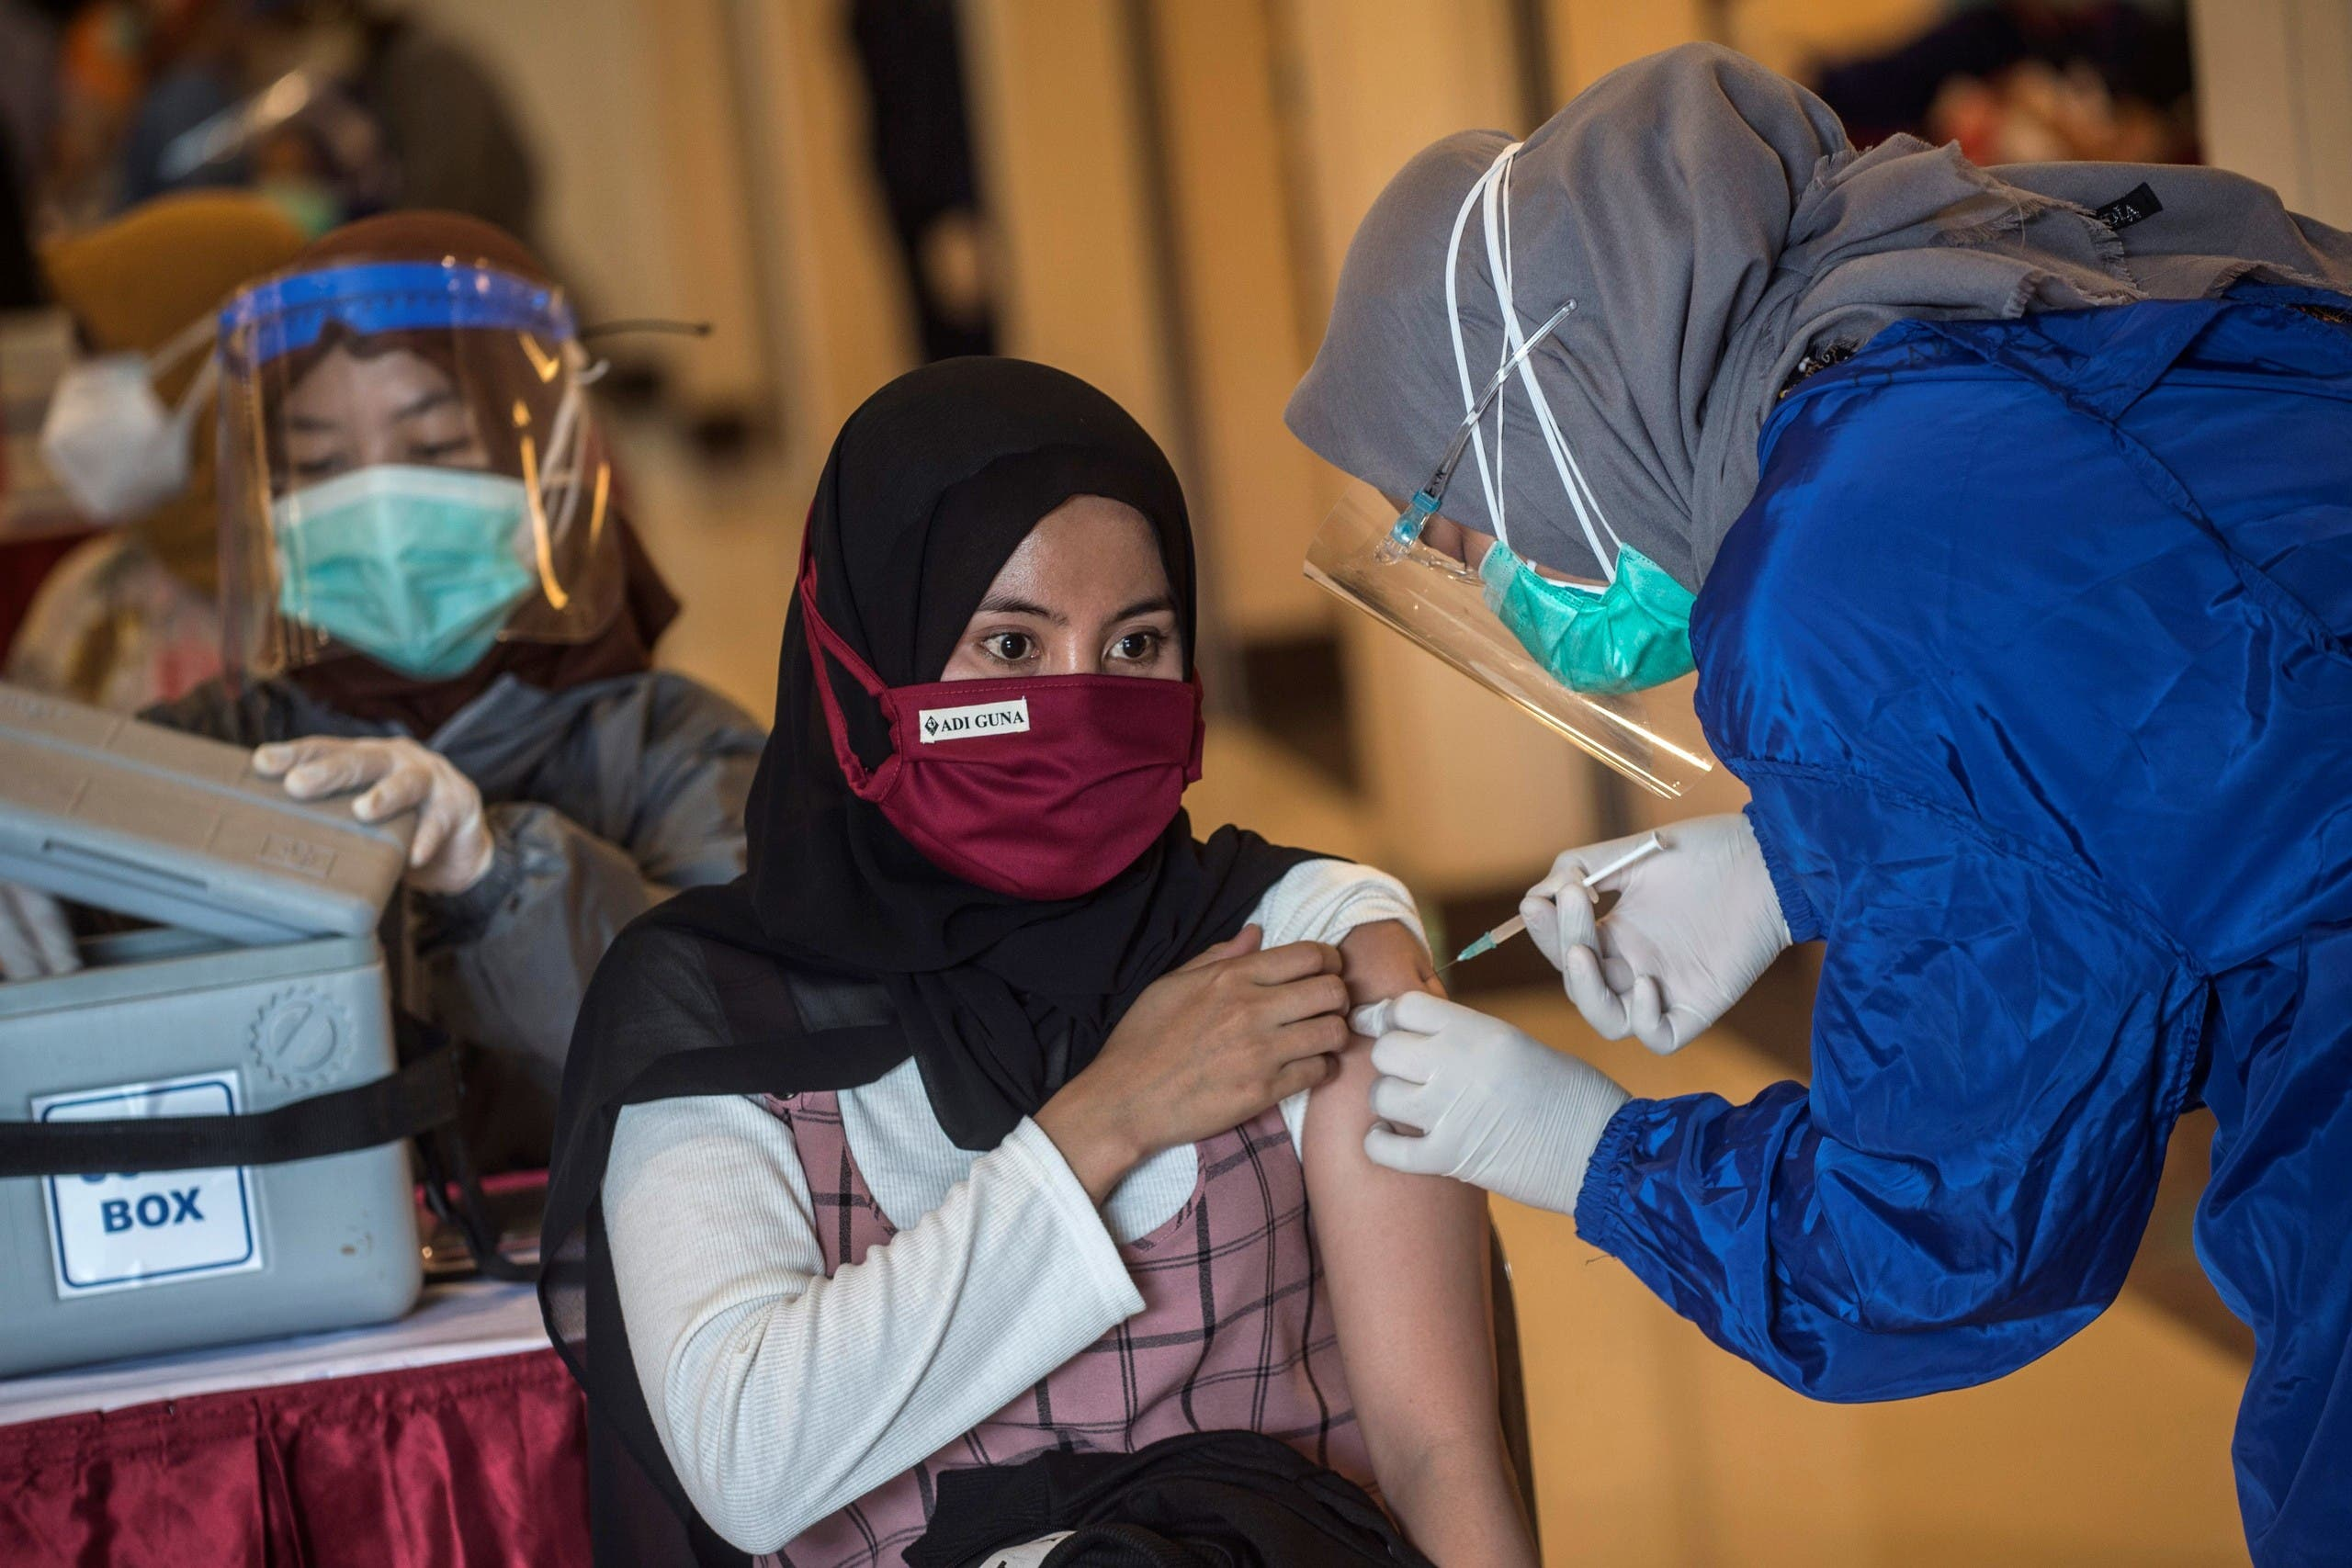 A health worker administers a vaccine for the COVID-19 coronavirus in Surabaya. (File photo: AFP)